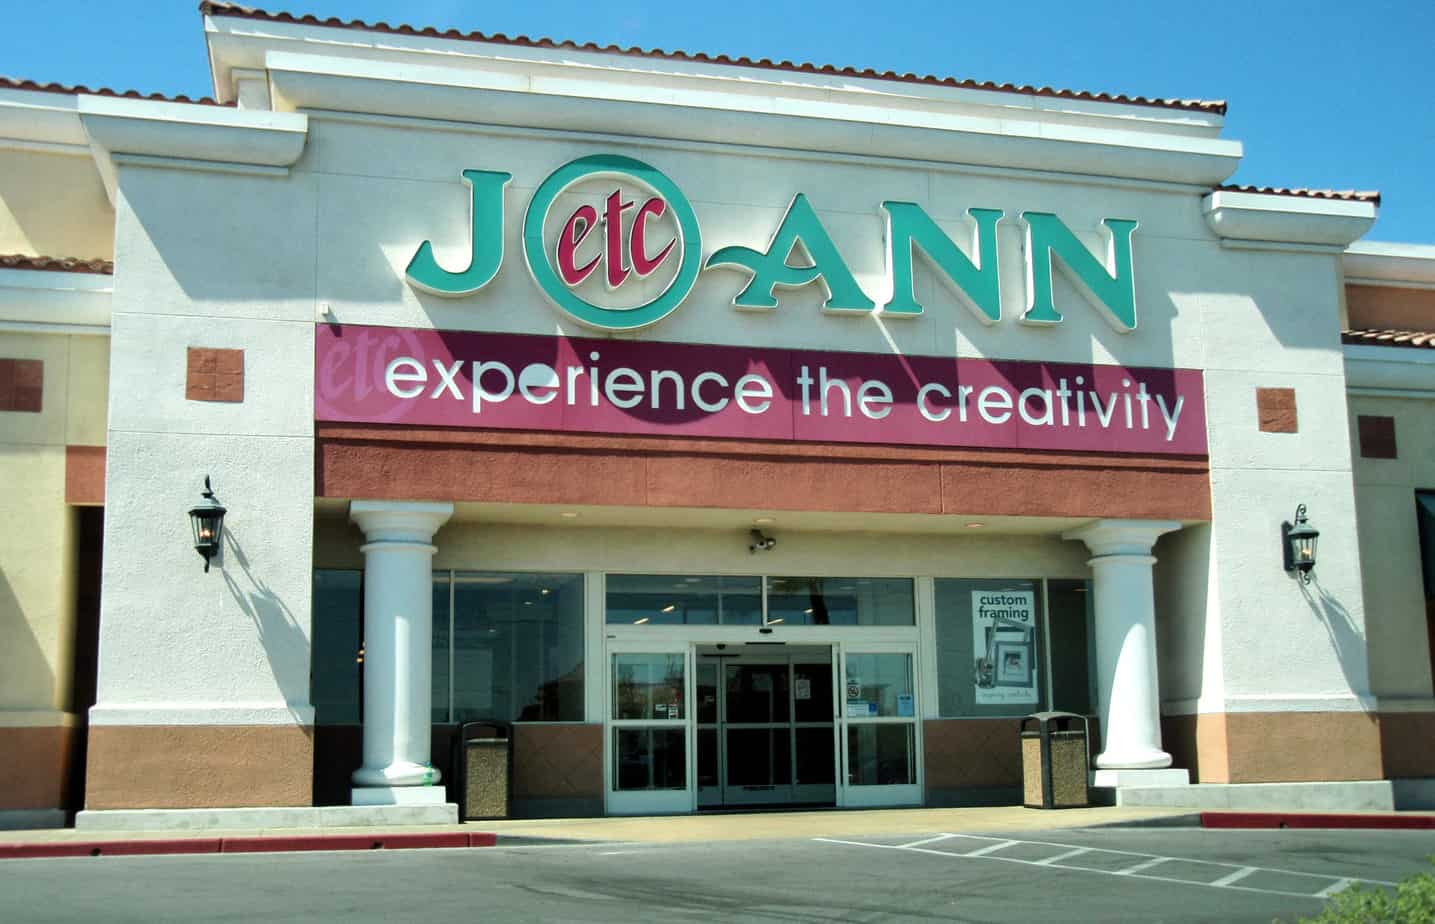 JoAnn Fabrics Will Provide Supplies to Make Masks for Doctors and Nurses